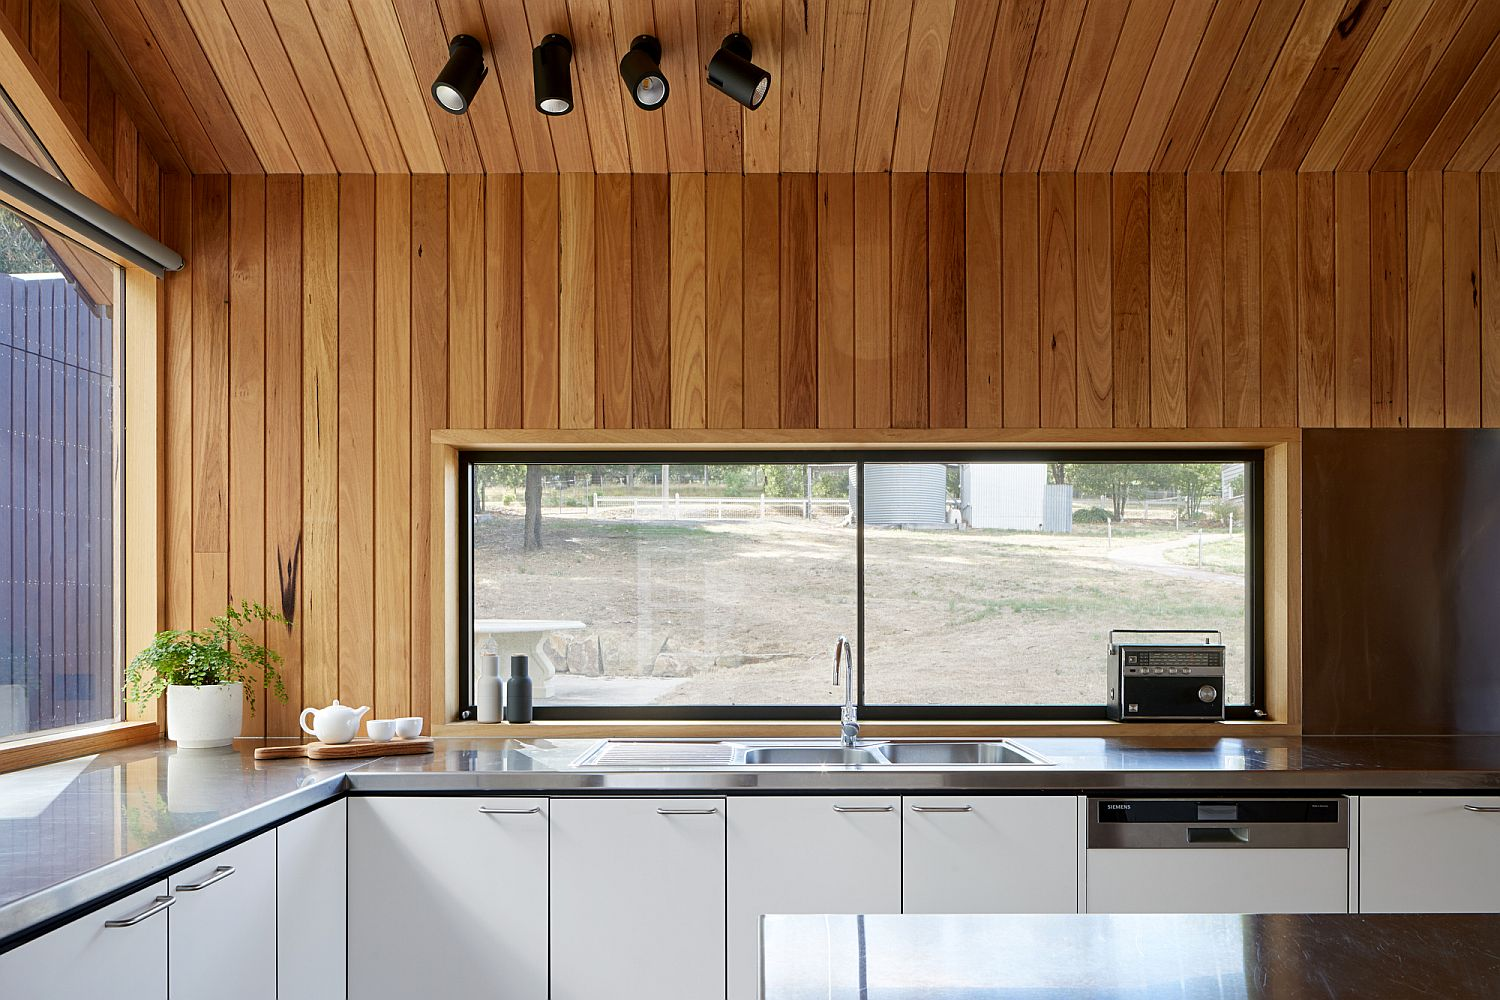 Kitchen-window-above-the-counter-offers-views-of-the-landscape-outside